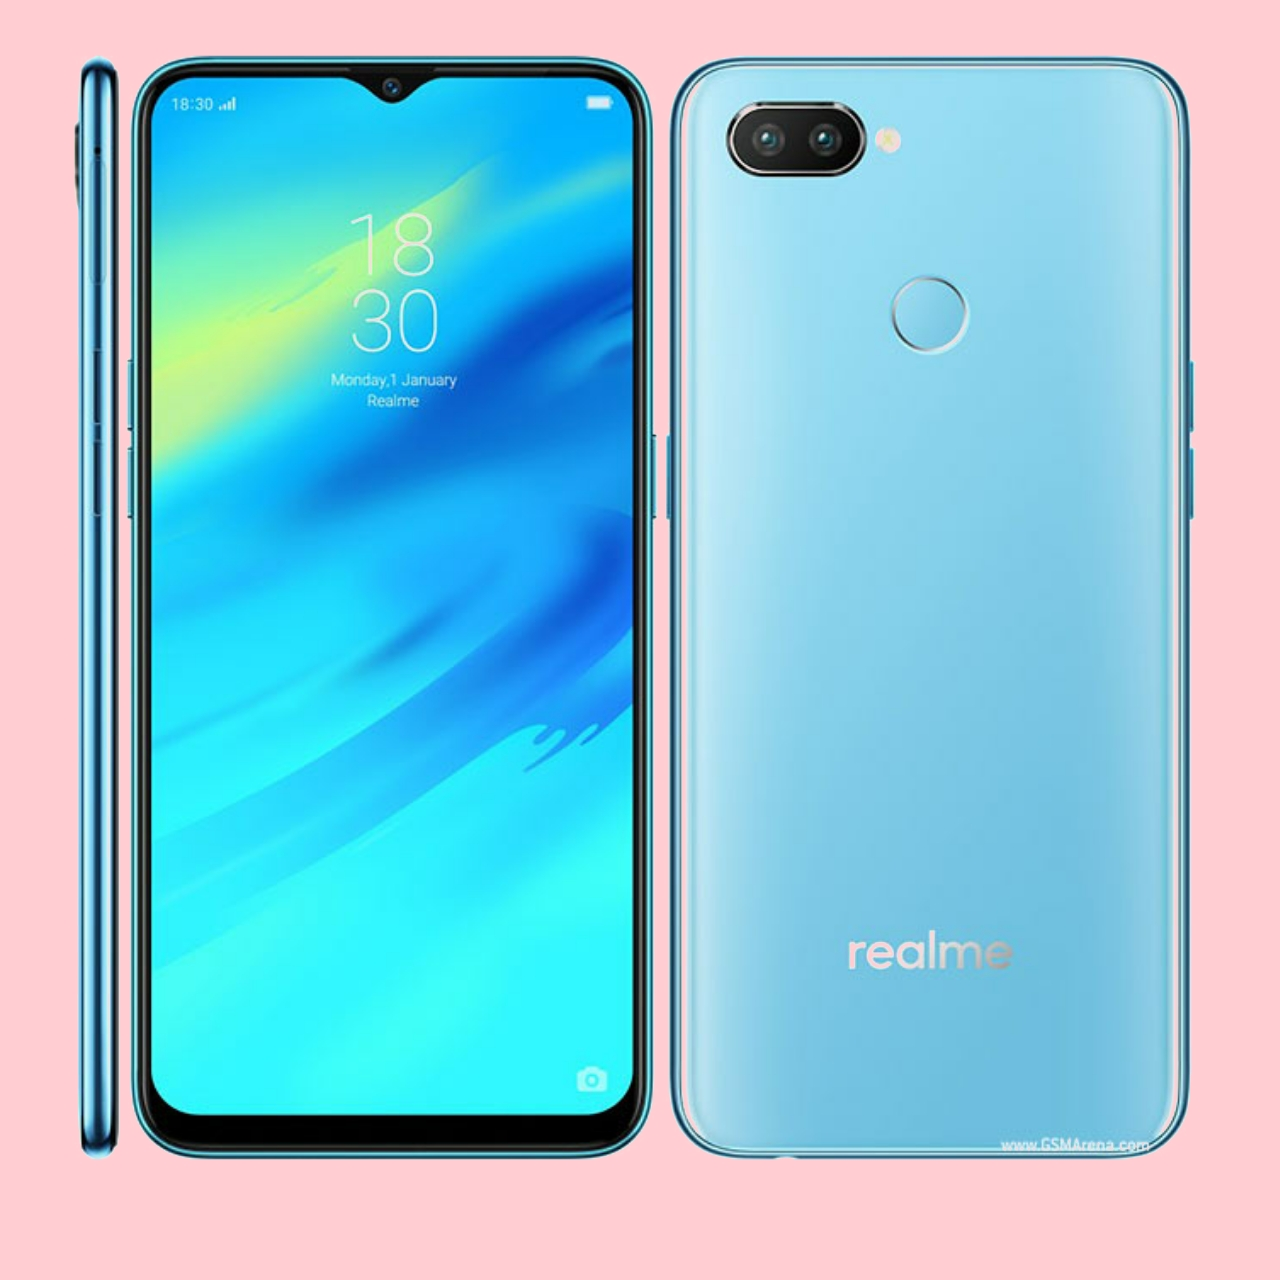 realme all mobile price in india 2018 | Aryavart tech